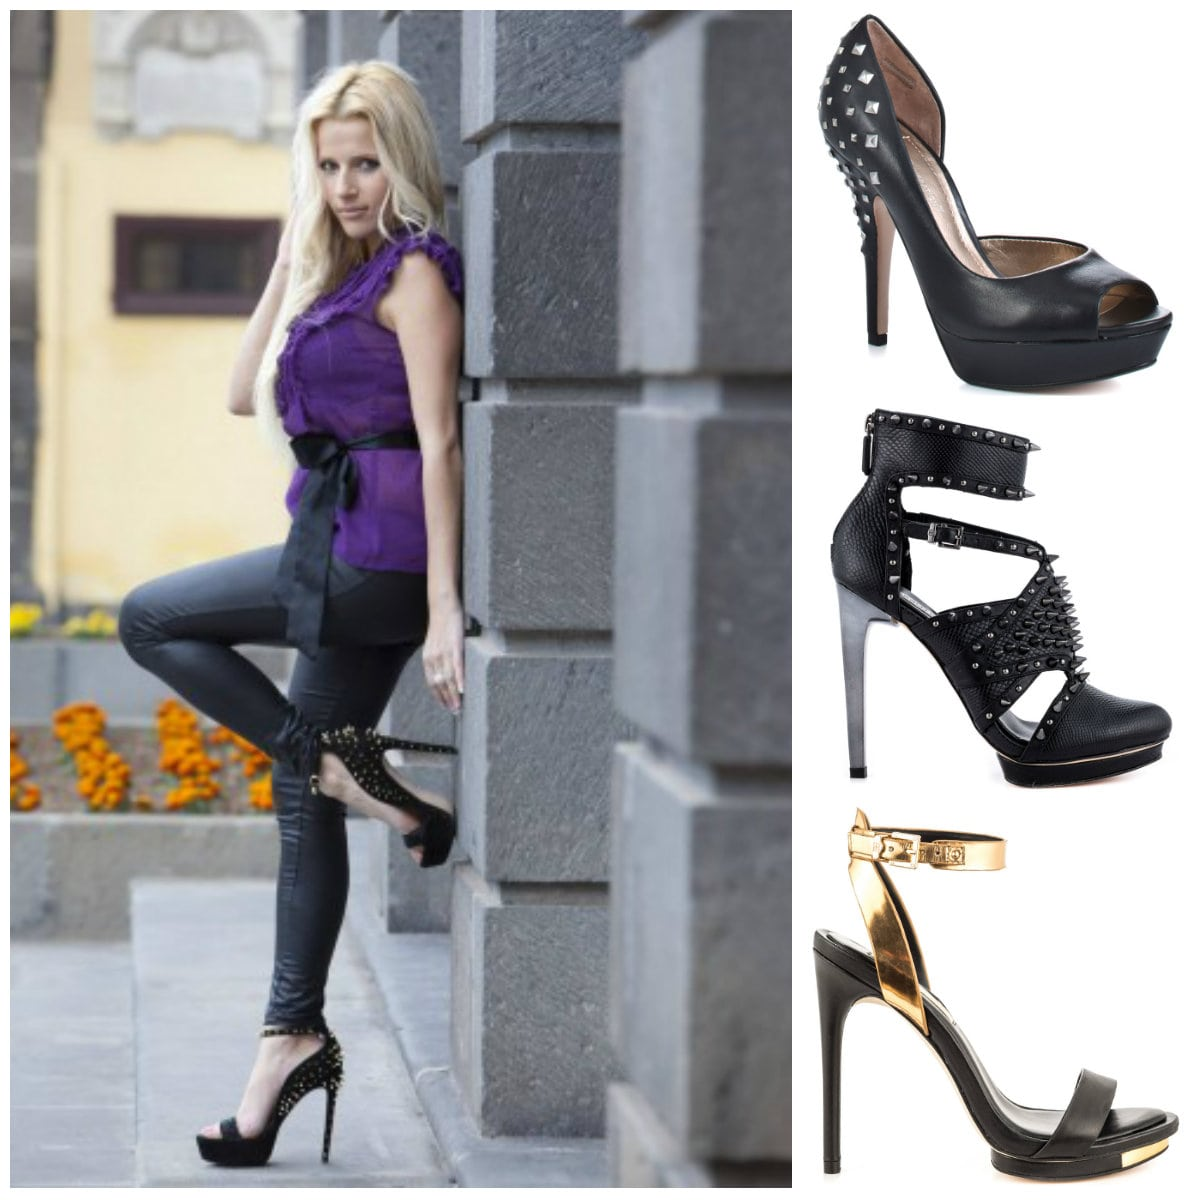 bcbgmaxazria-heels-collection